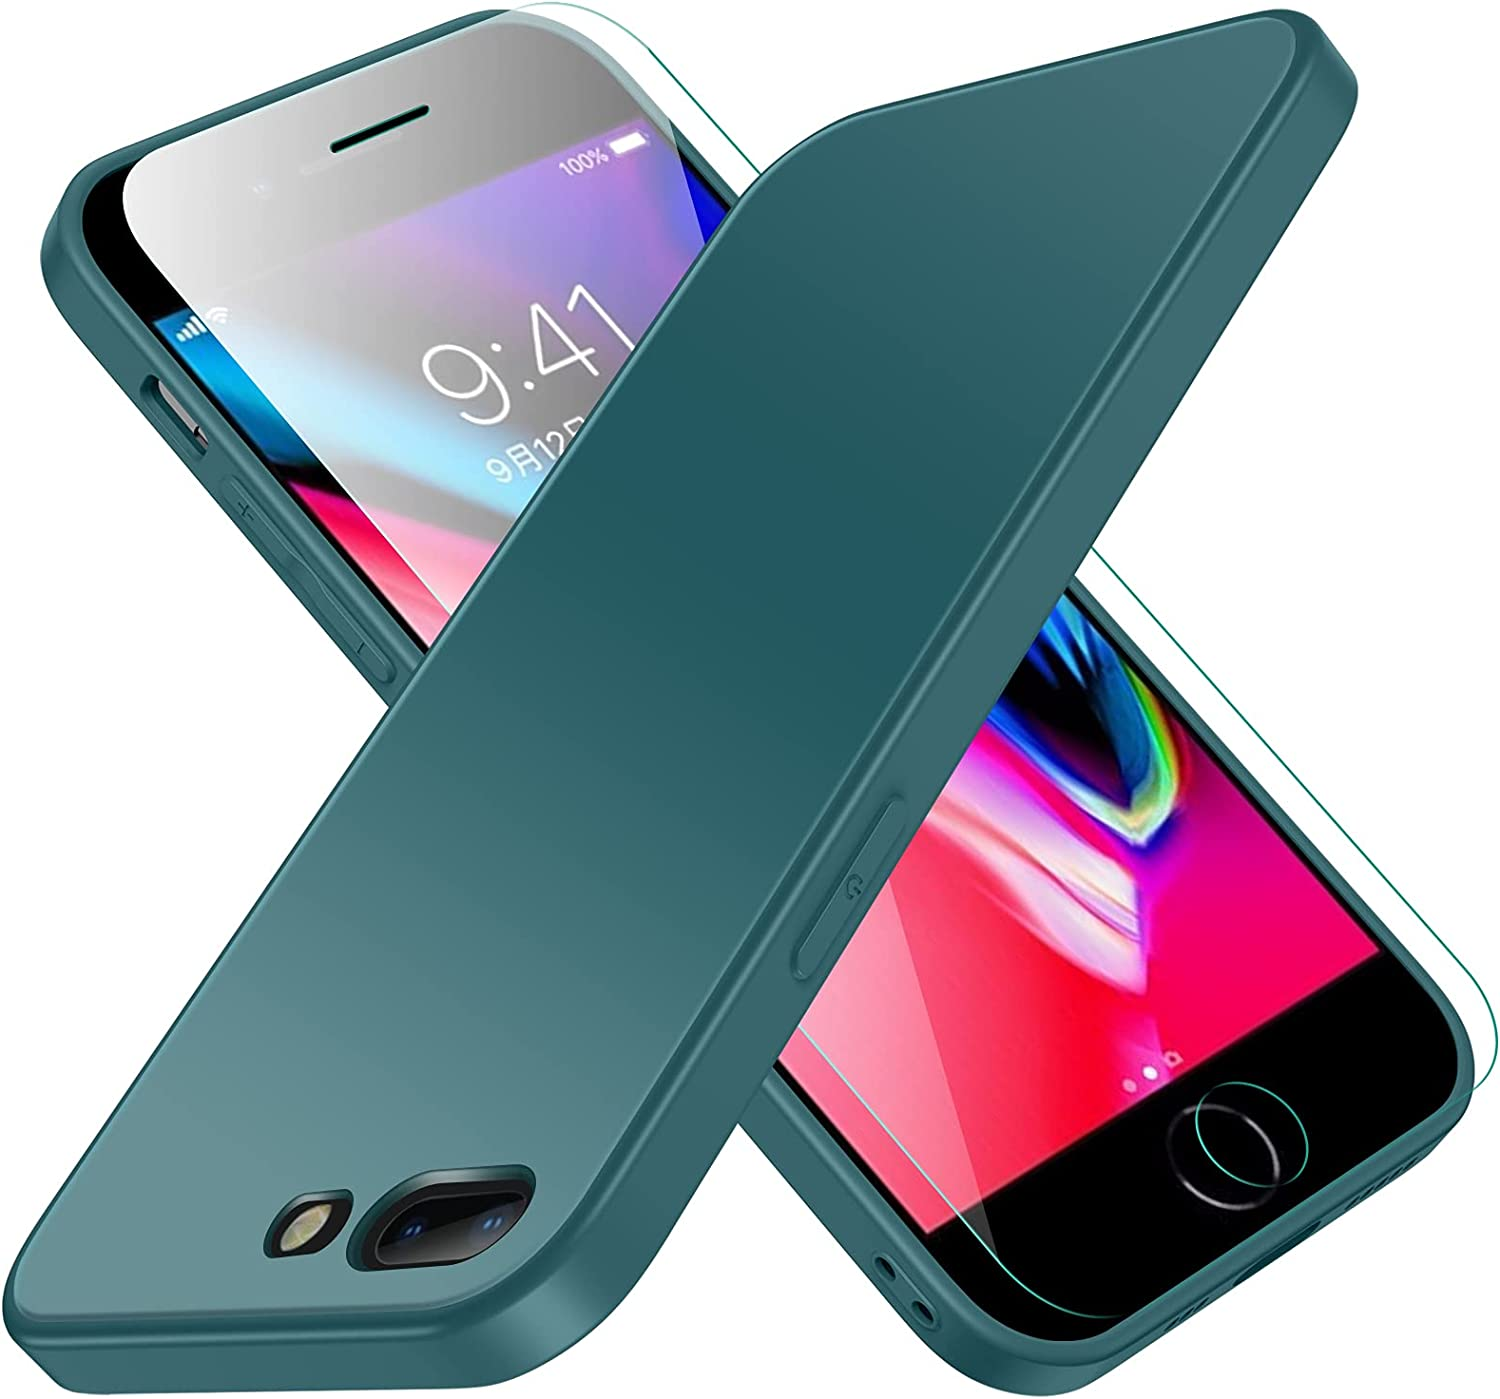 Compatible with iPhone 8 Plus Case, Jonwelsy Luxury Soft Liquid Silicone Shockproof Protection Phone Case + Frosted Tempered Glass Back Cover for iPhone 7+ / 8+ (5.5 inch) (Midnight Green)